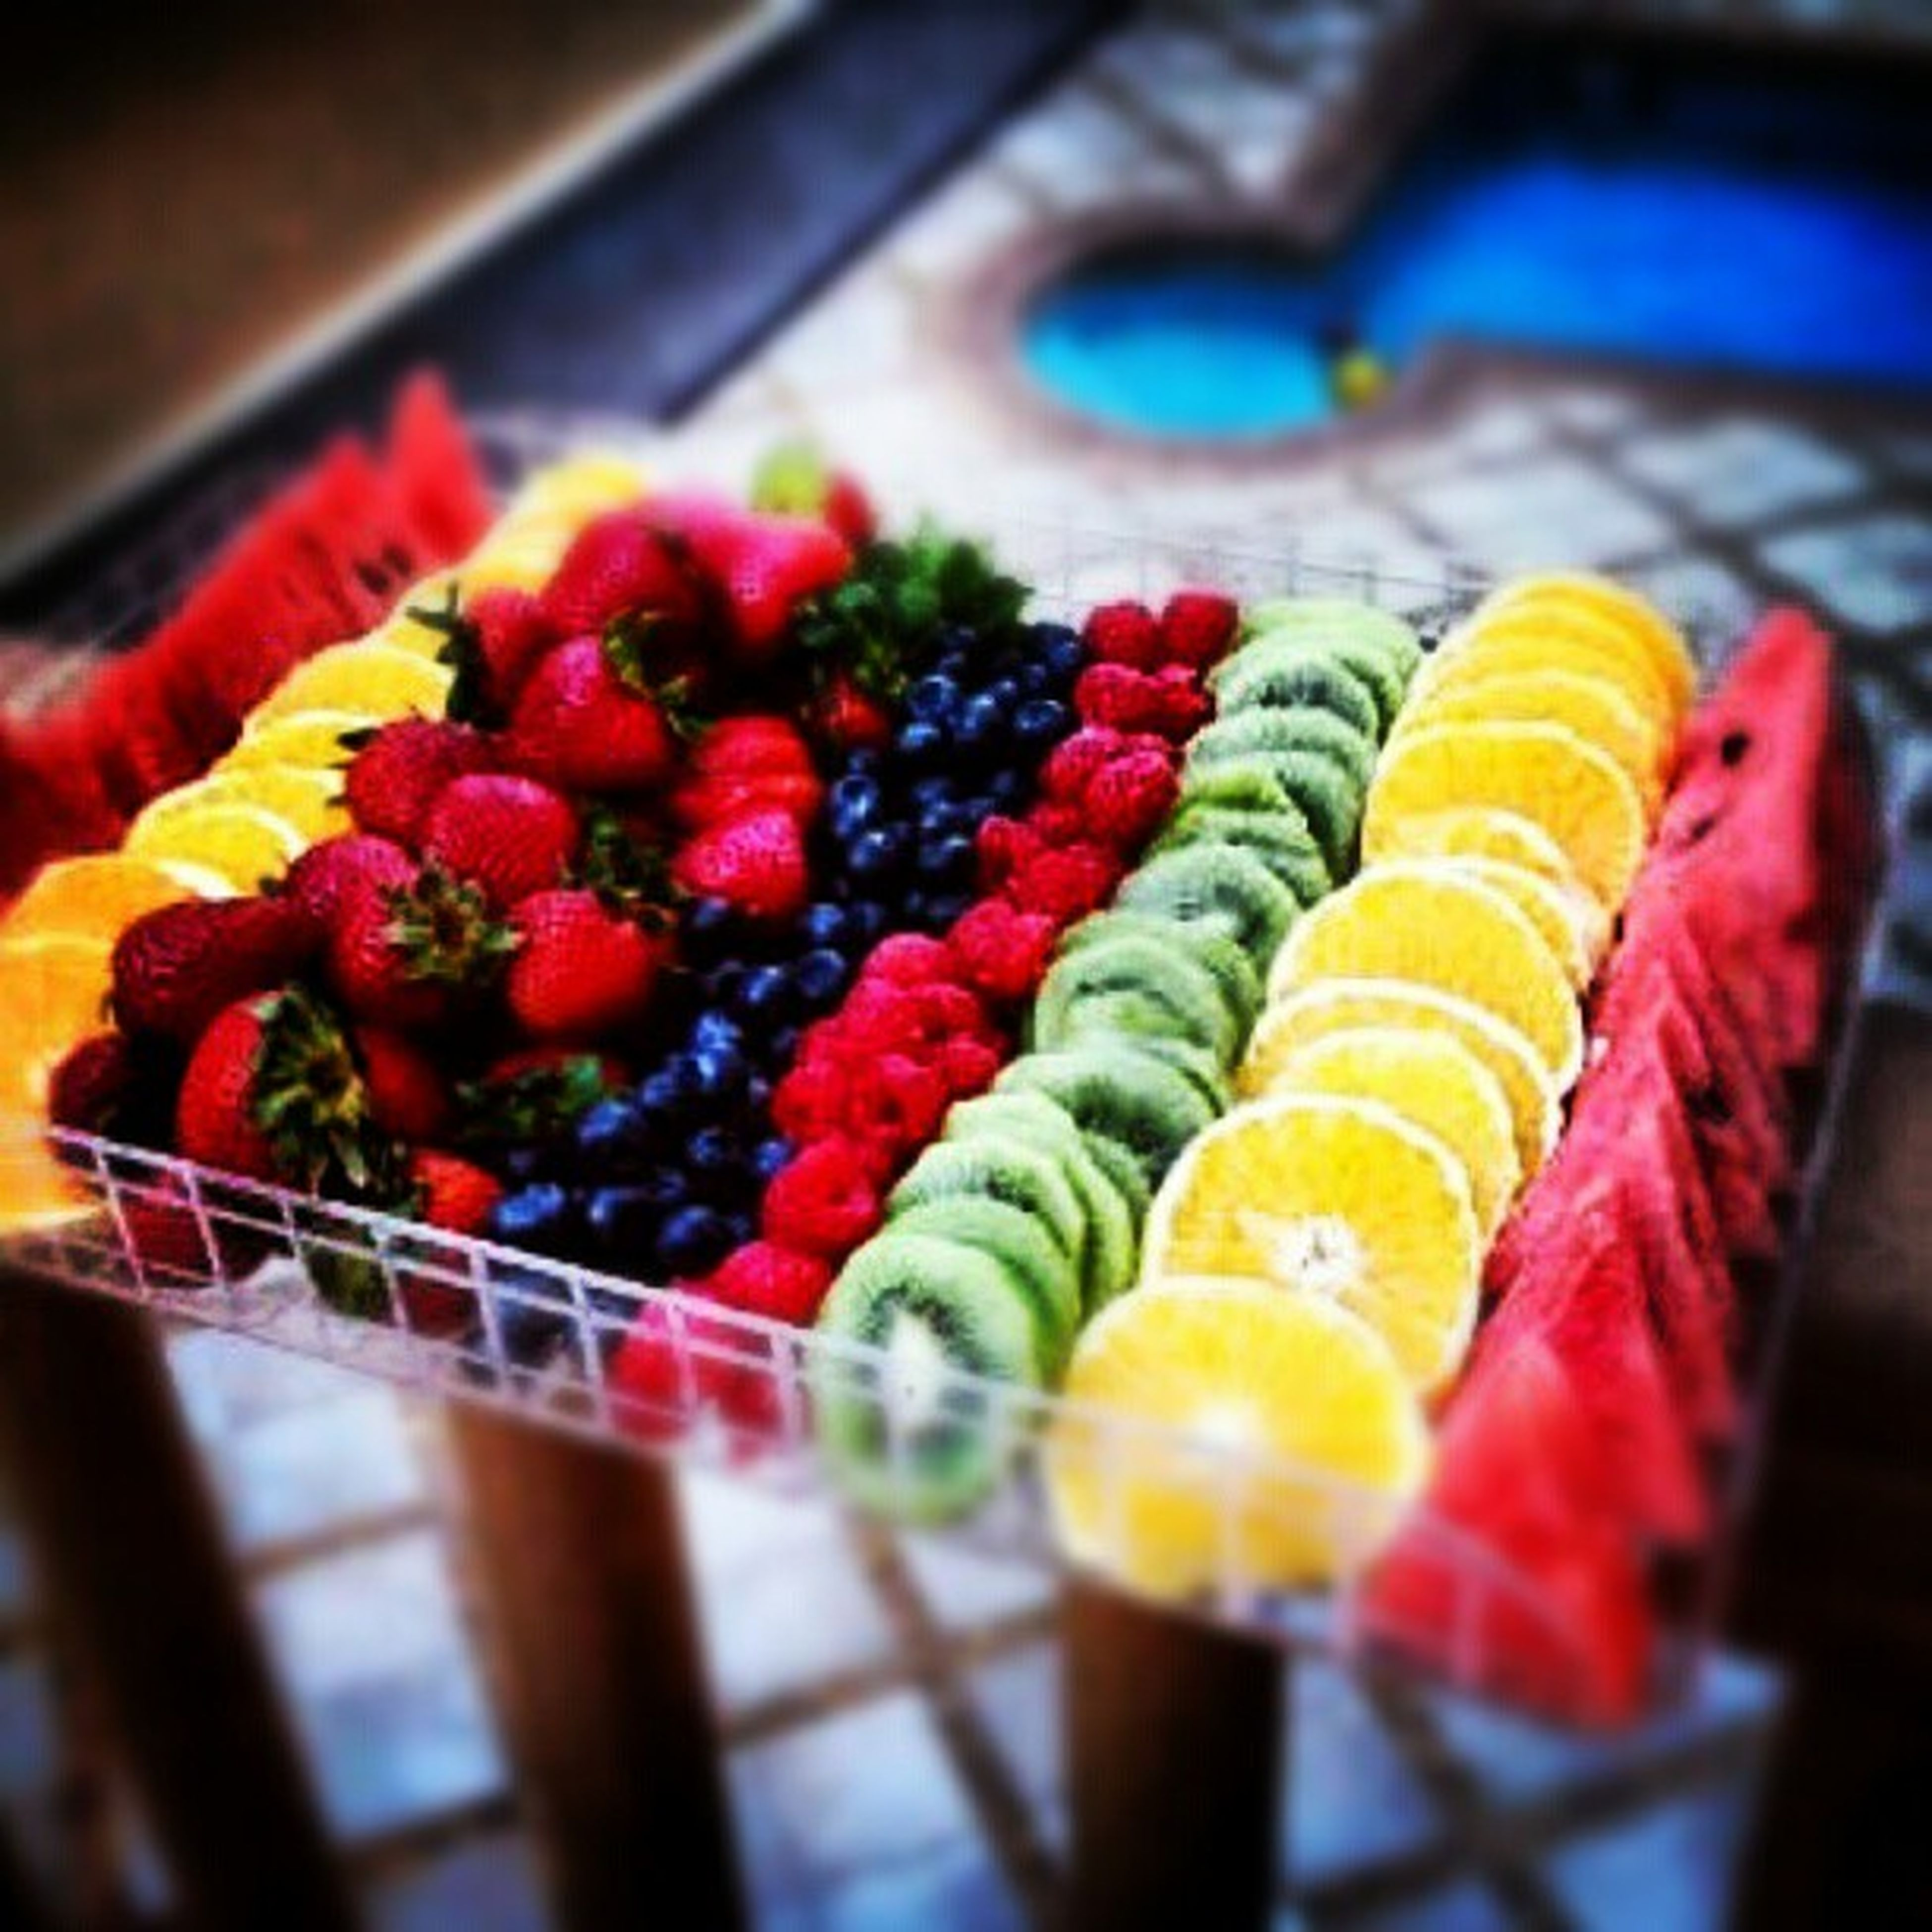 food and drink, indoors, food, freshness, sweet food, still life, multi colored, table, fruit, selective focus, dessert, indulgence, close-up, focus on foreground, variation, ready-to-eat, unhealthy eating, temptation, colorful